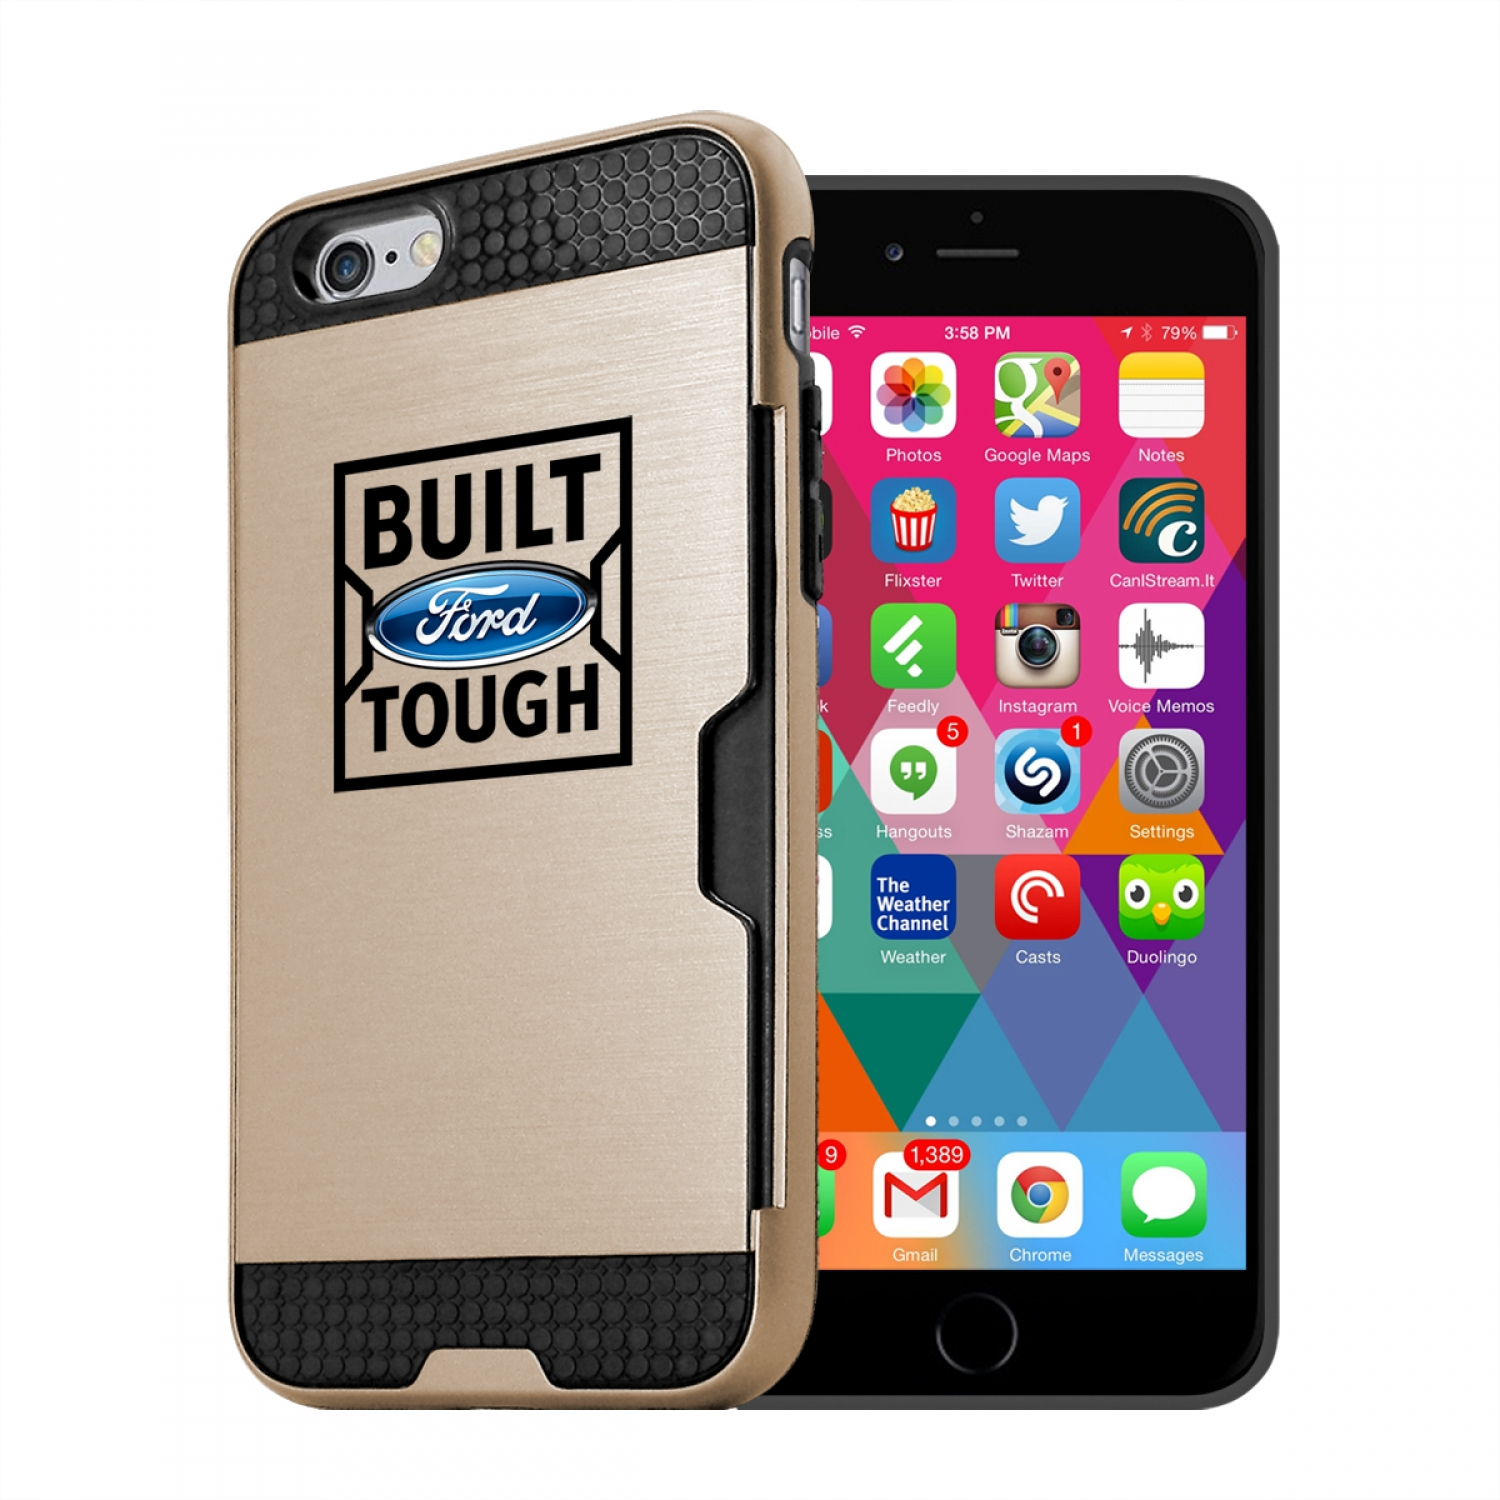 Ford Built Ford Tough iPhone 6 6s Ultra Thin TPU Golden Phone Case with Credit Card Slot Wallet